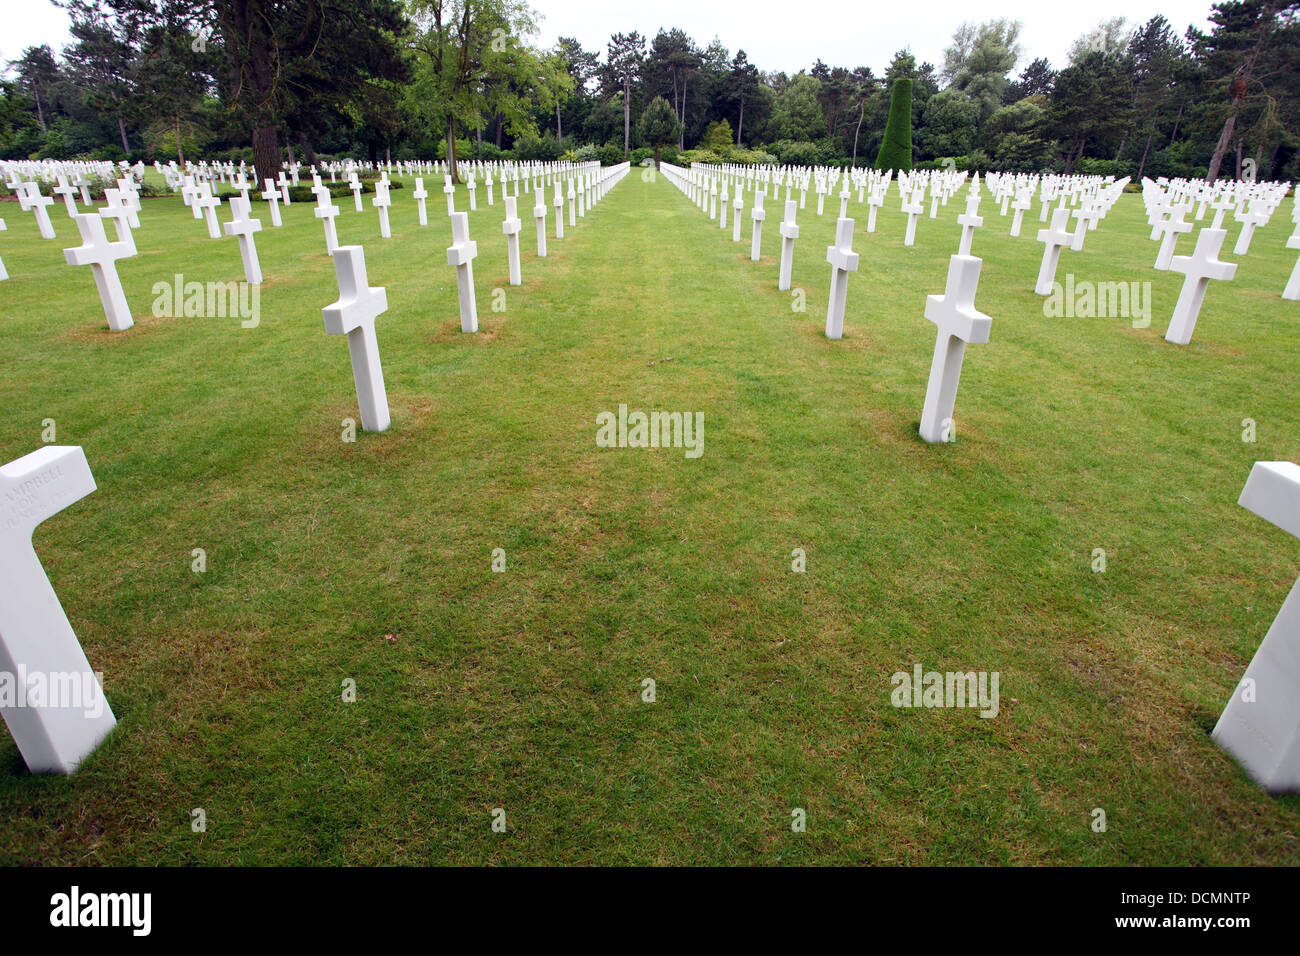 Gravestones at the Normandy American Memorial and Cemetery, maintained by the American Battle Monuments Commission - Stock Image